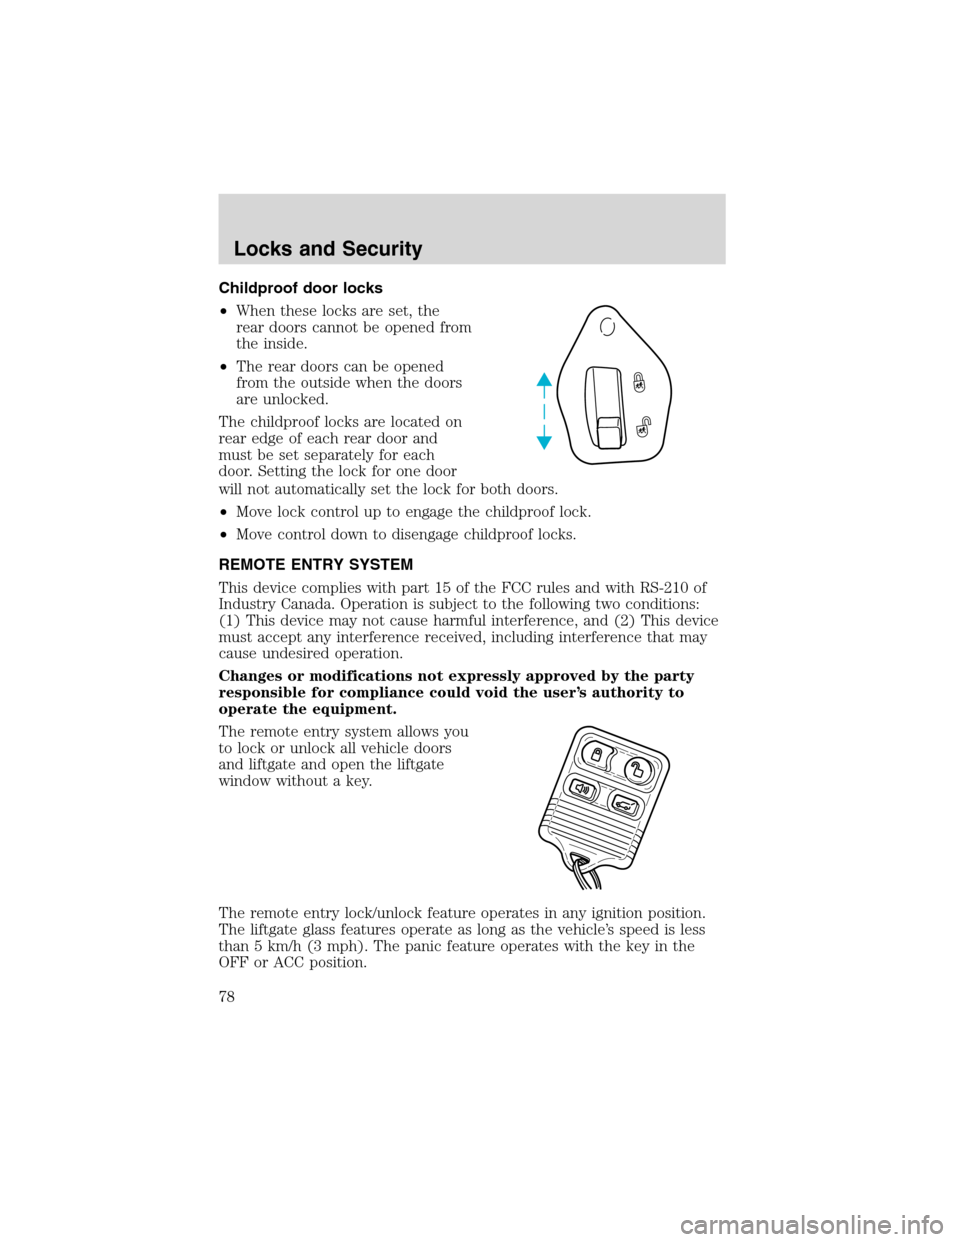 Ford Explorer 2003 3g Owners Manual Door Lock Schematic Page 78 Childproof Locks